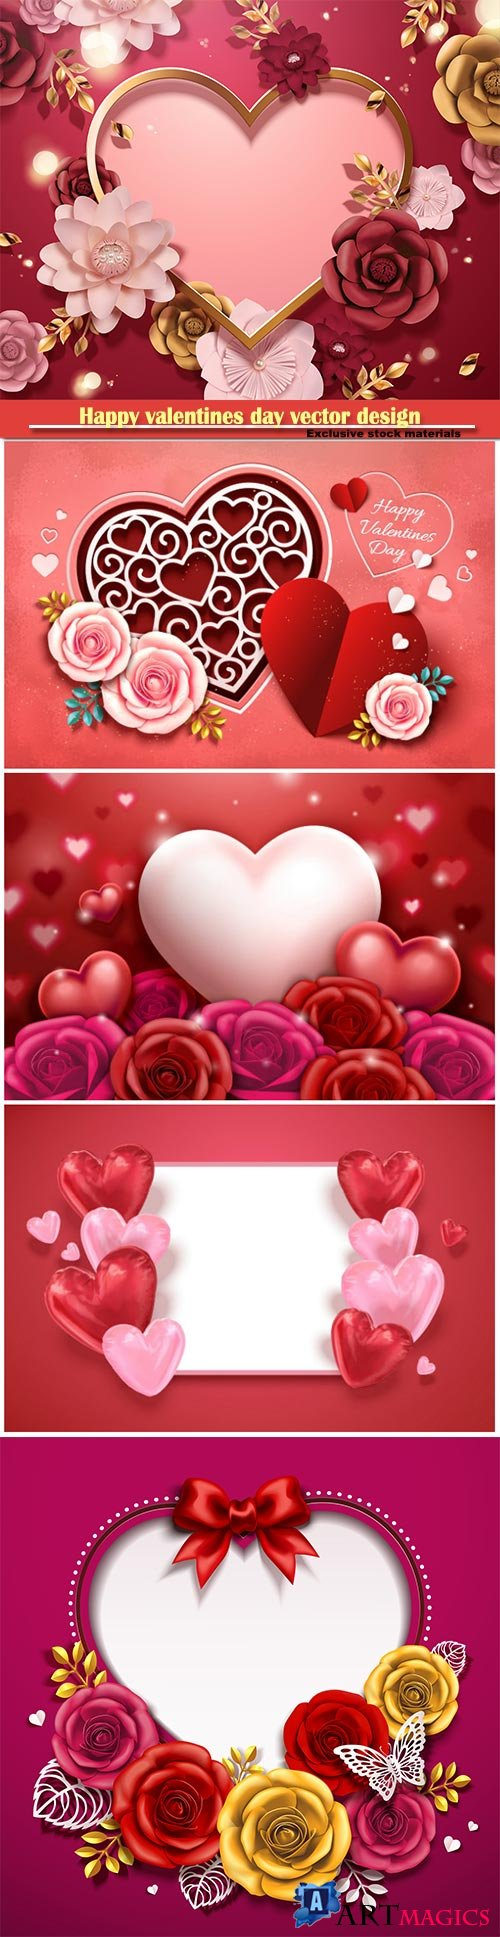 Happy valentines day vector design with heart, balloons, roses in 3d illustration # 3